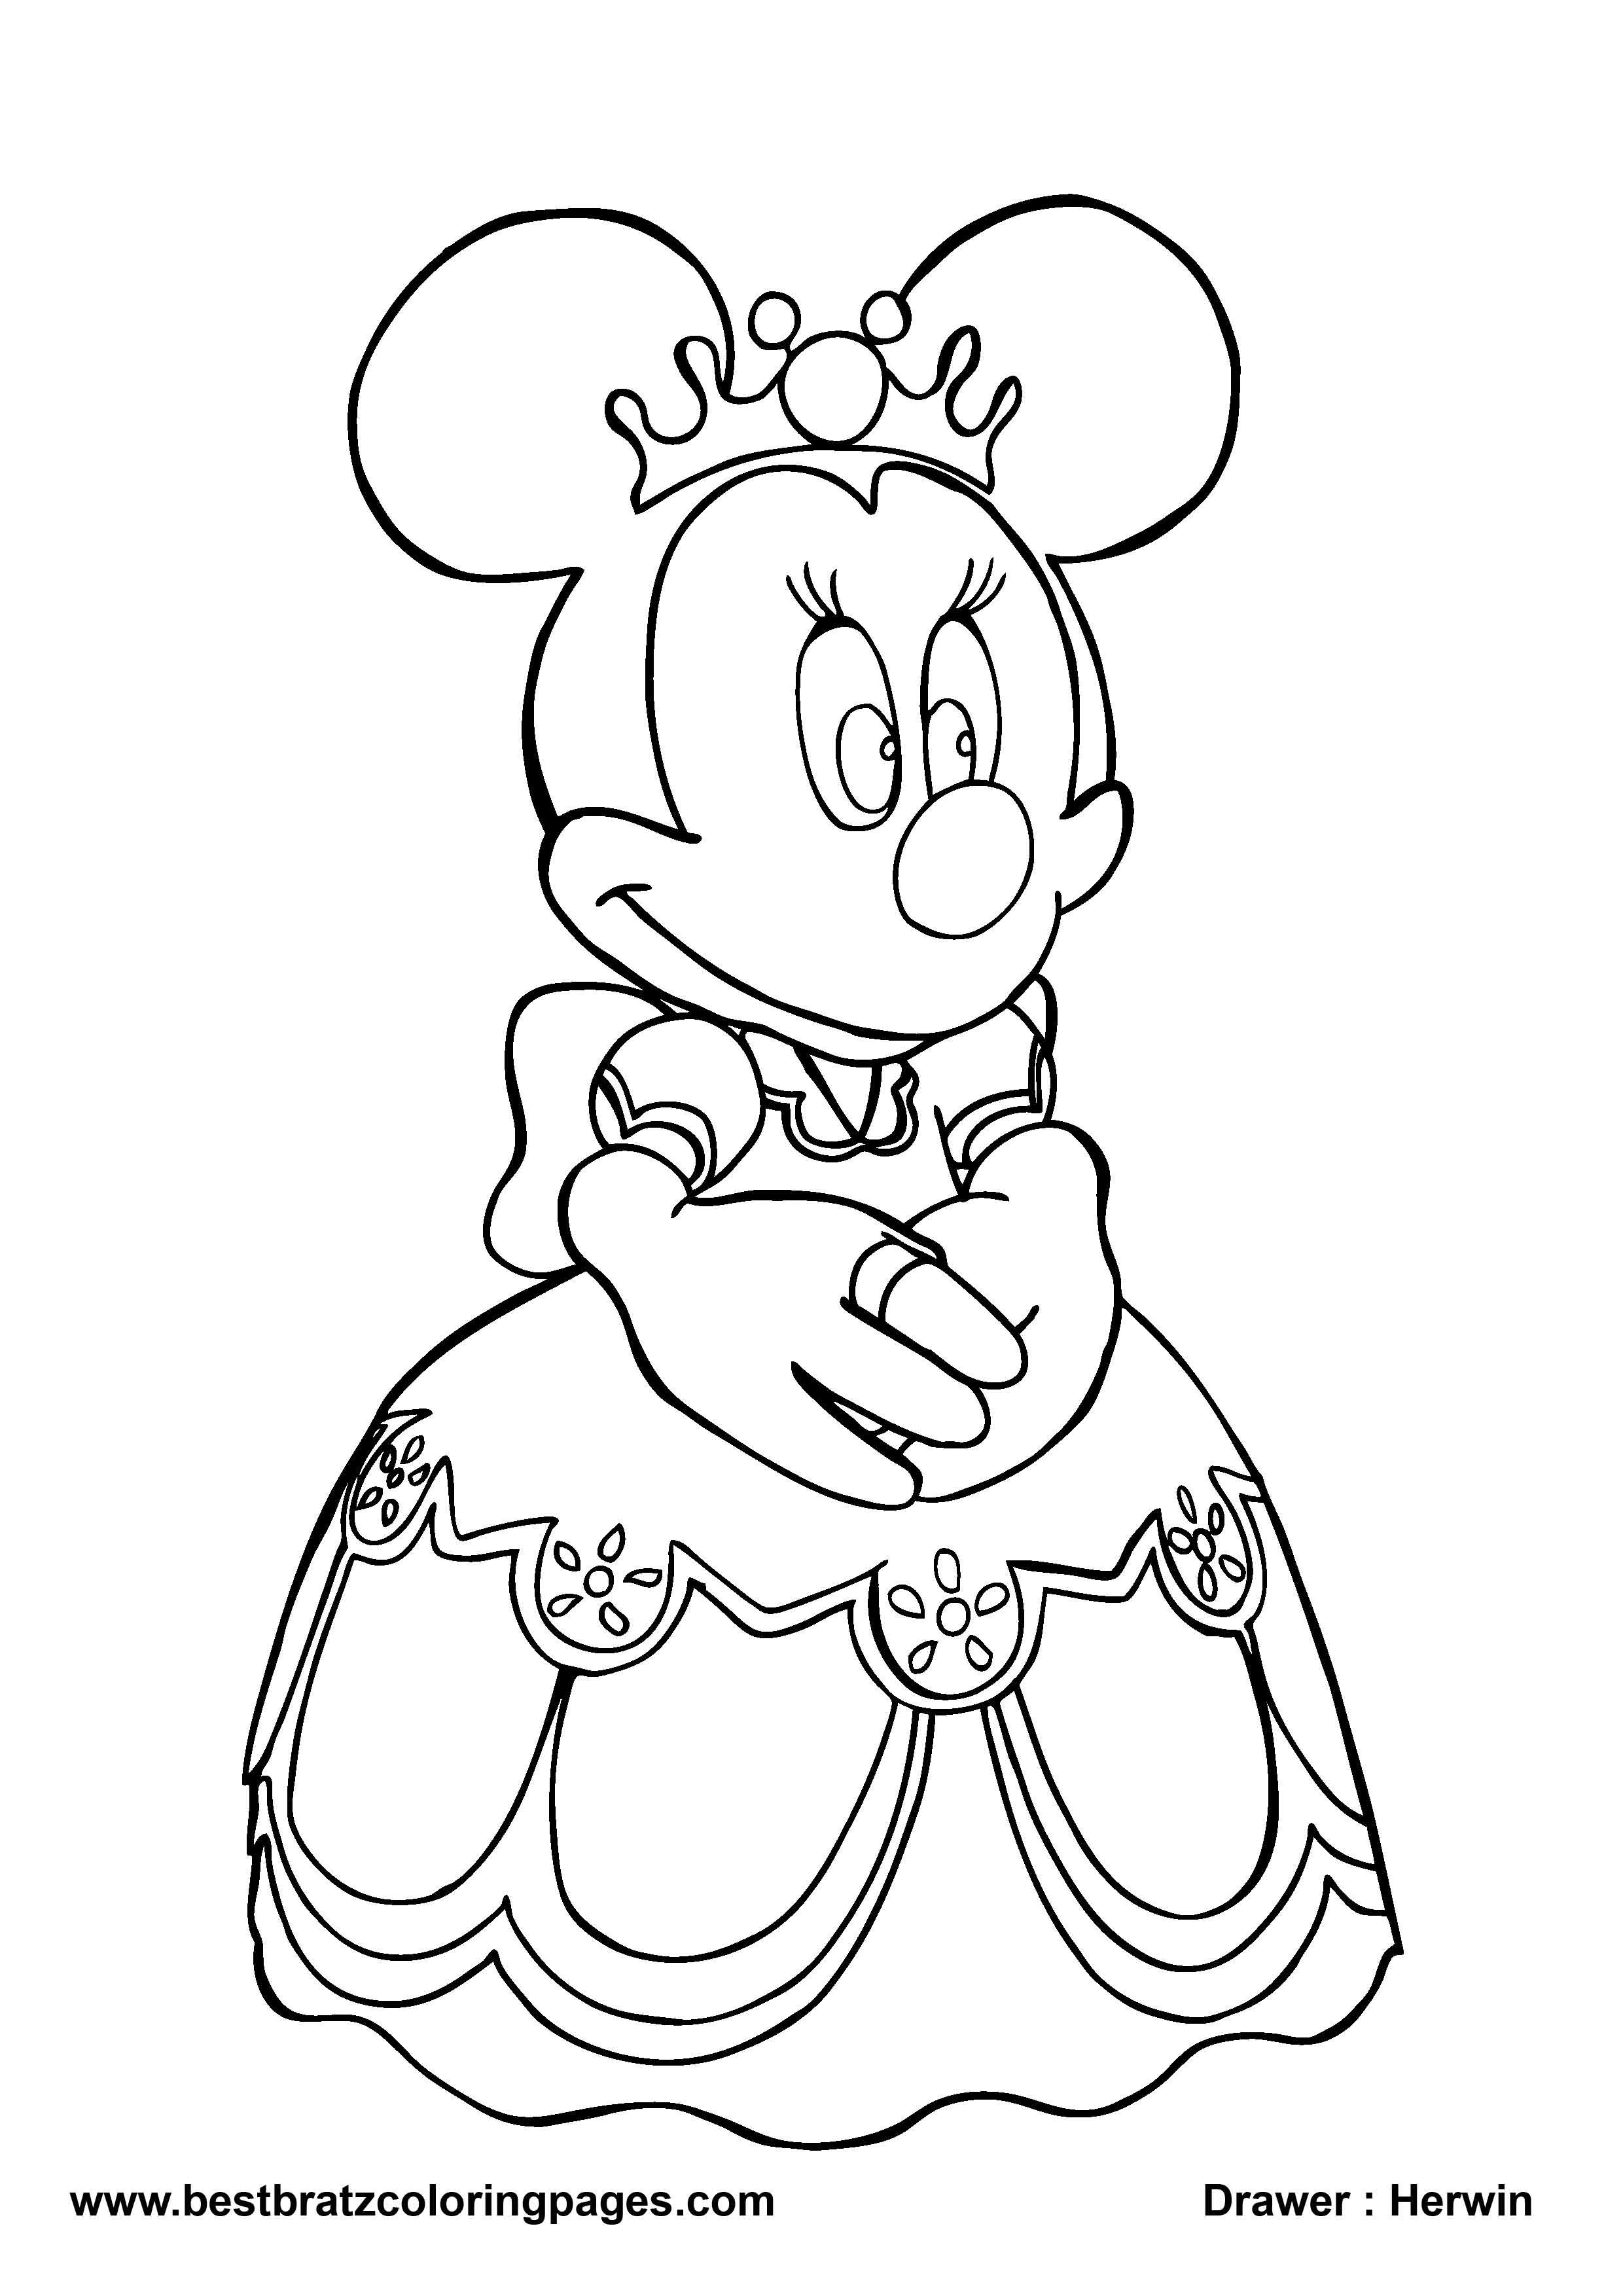 Best ideas about Coloring Sheets For Girls Minne . Save or Pin Minnie Mouse Coloring Pages Games Coloring Pages Minnie Now.